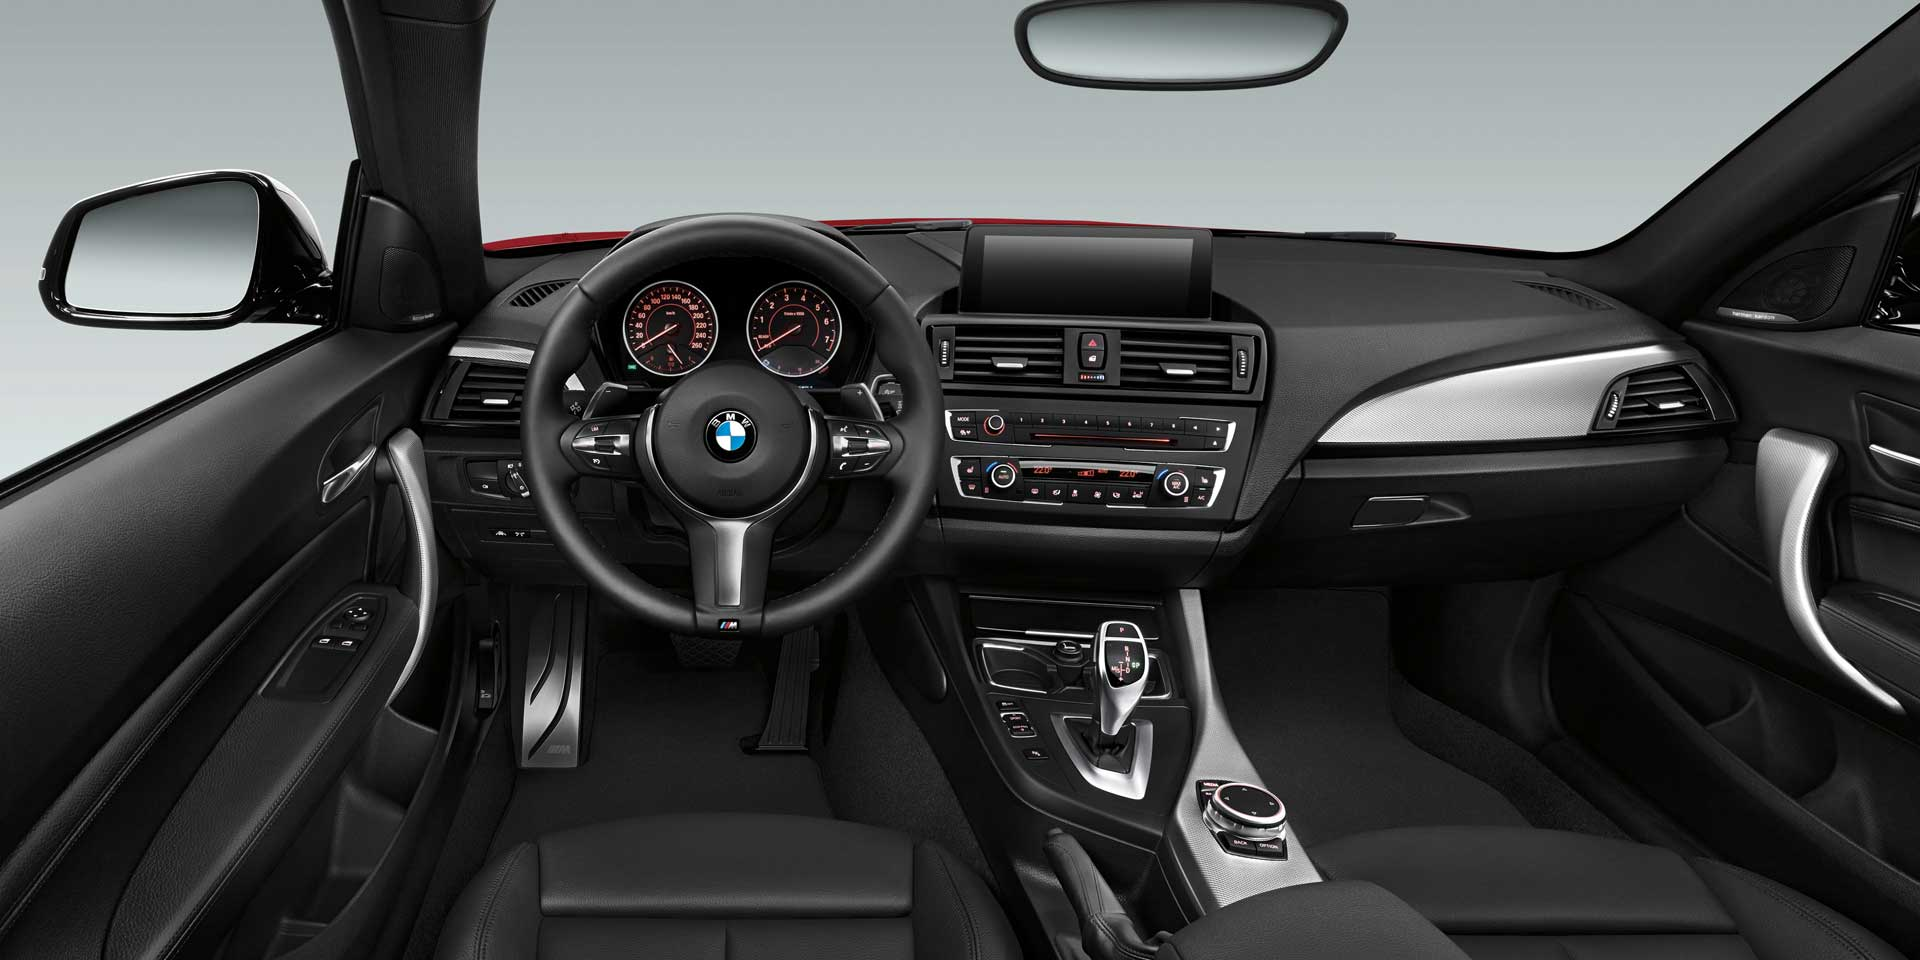 2017 BMW 2 Series: Available As A 2 Door Hardtop Or 2 Door Convertible, The BMW  2 Series Is A Rear  Or All Wheel Drive Sports Coupe That Competes With The  ...